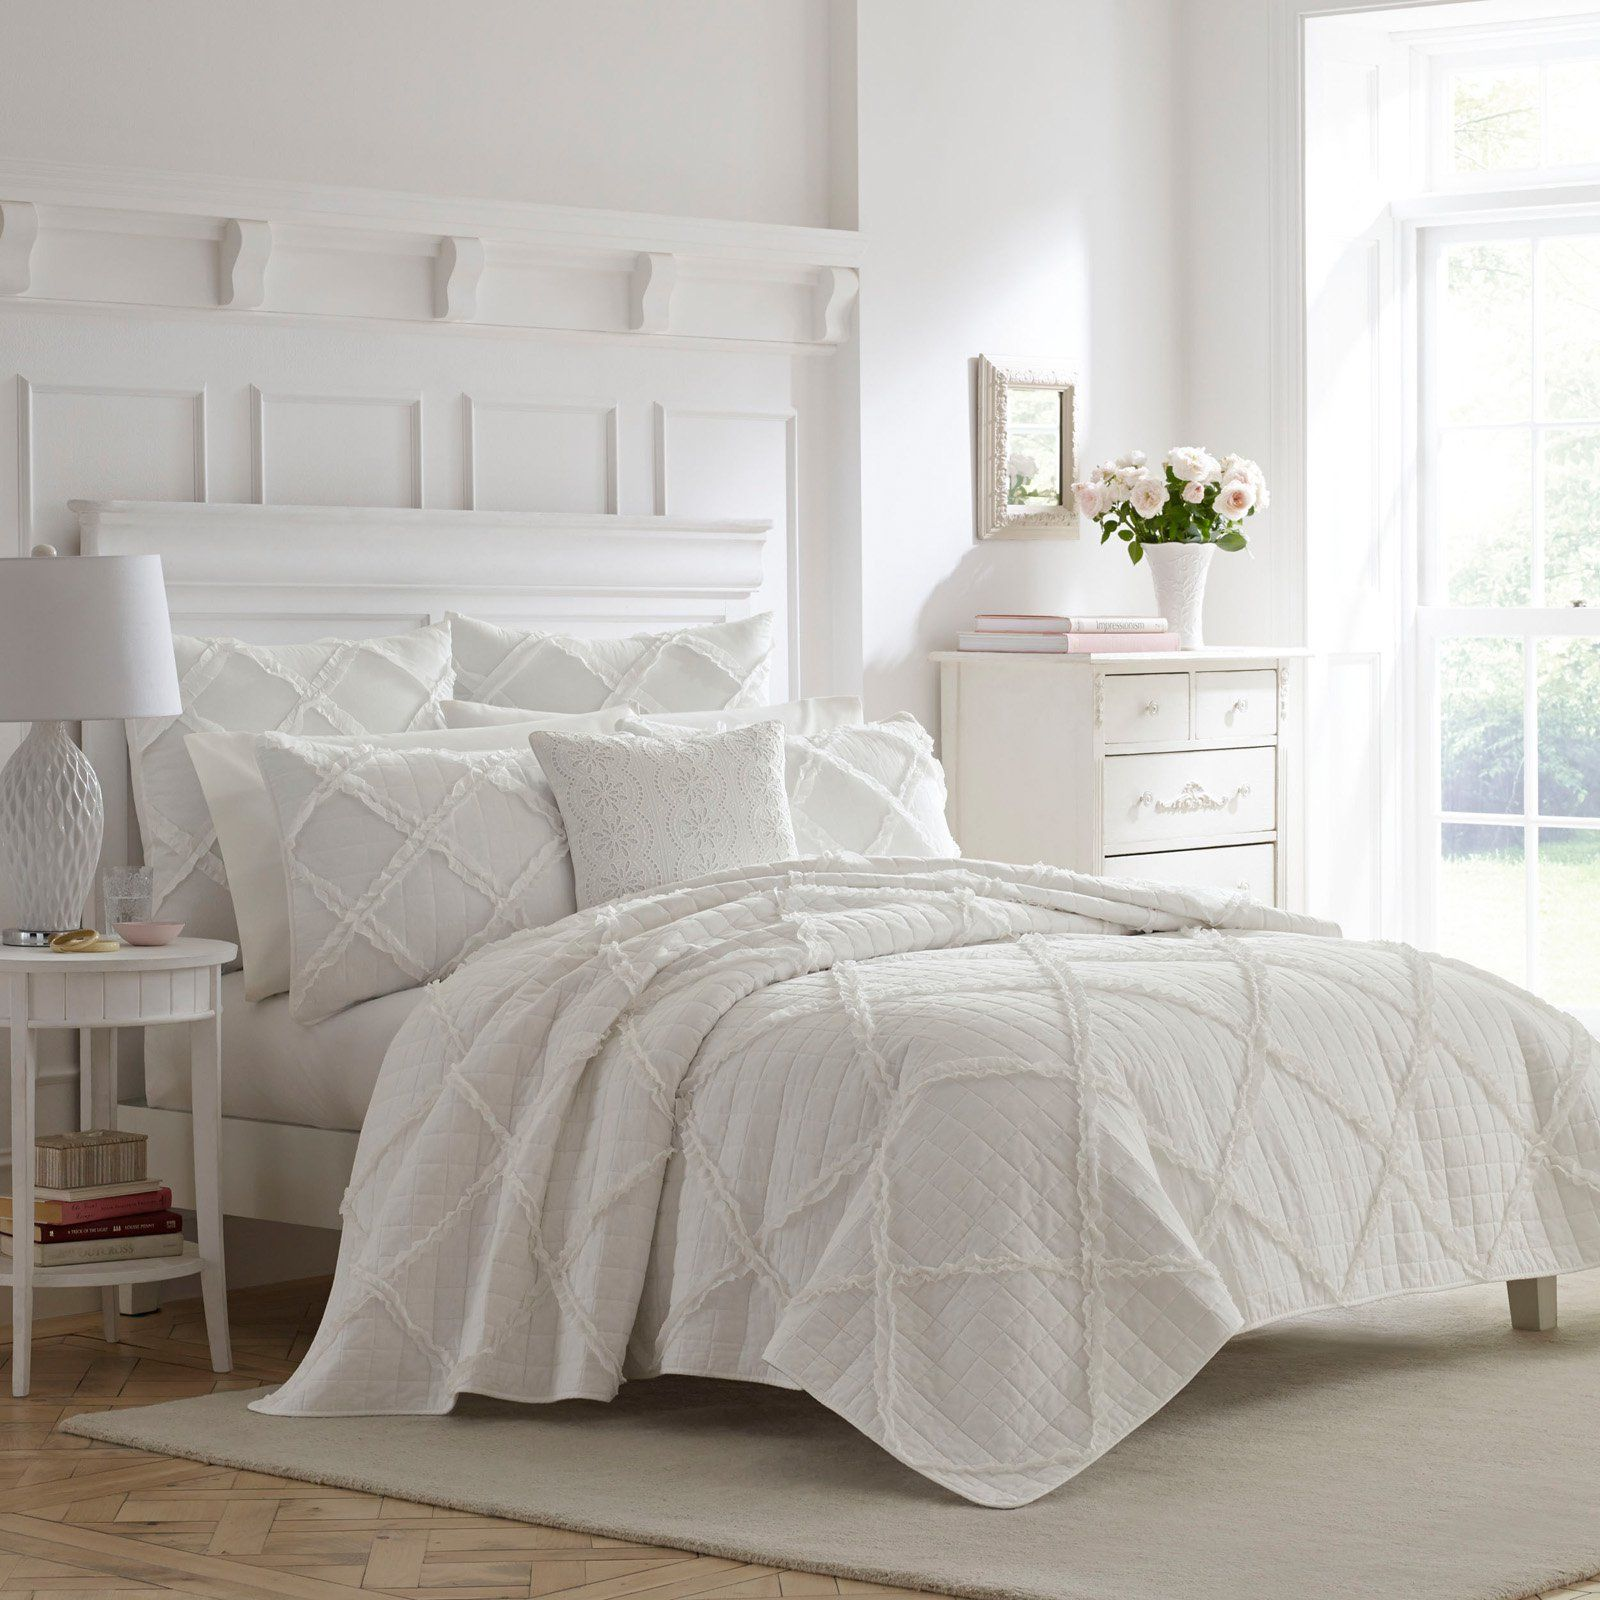 Buy Luxury White Lace Ruffle Bedding Set Twin Full Queen King